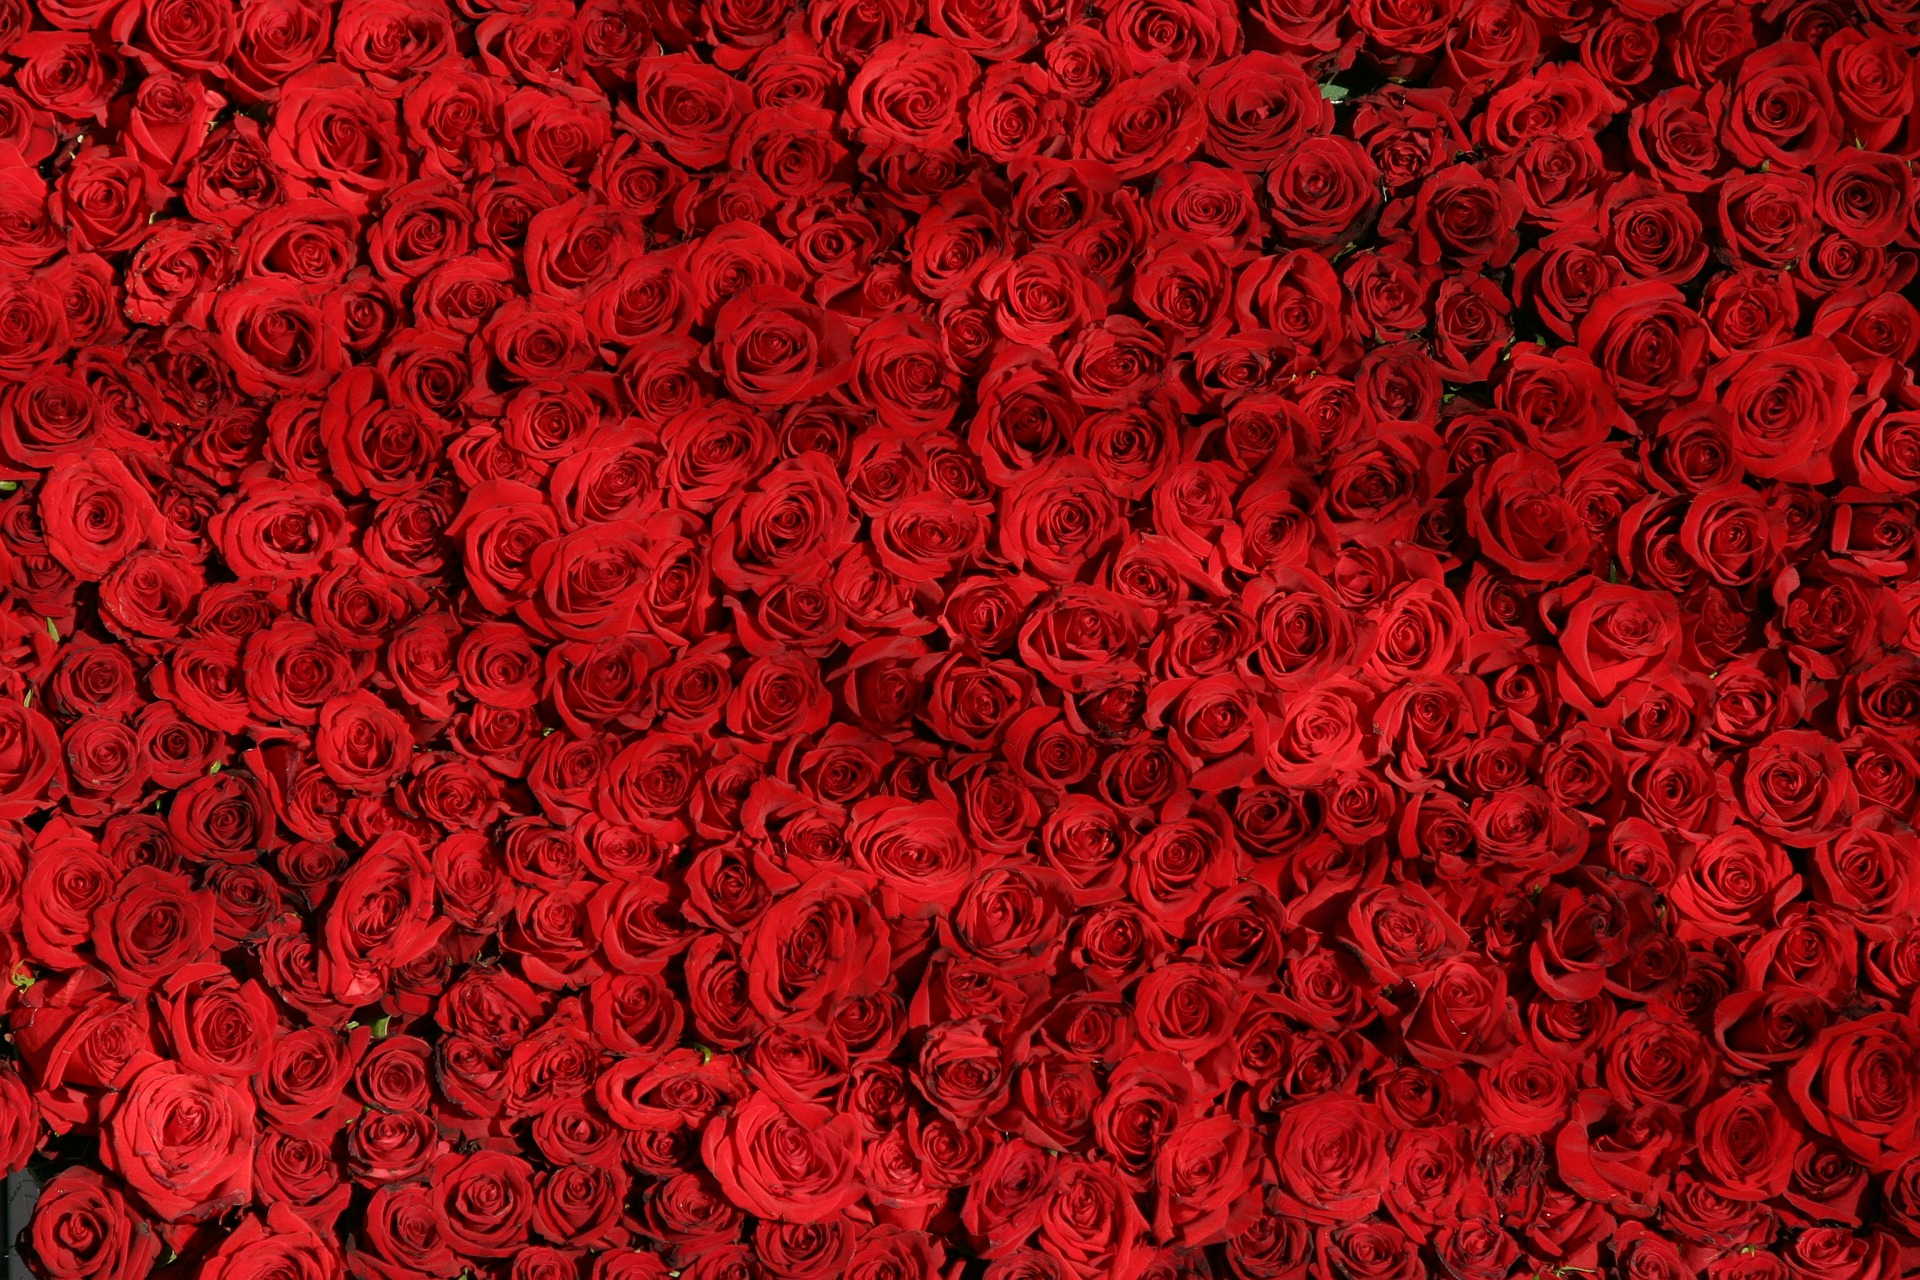 Red roses are always a good option | Pixabay